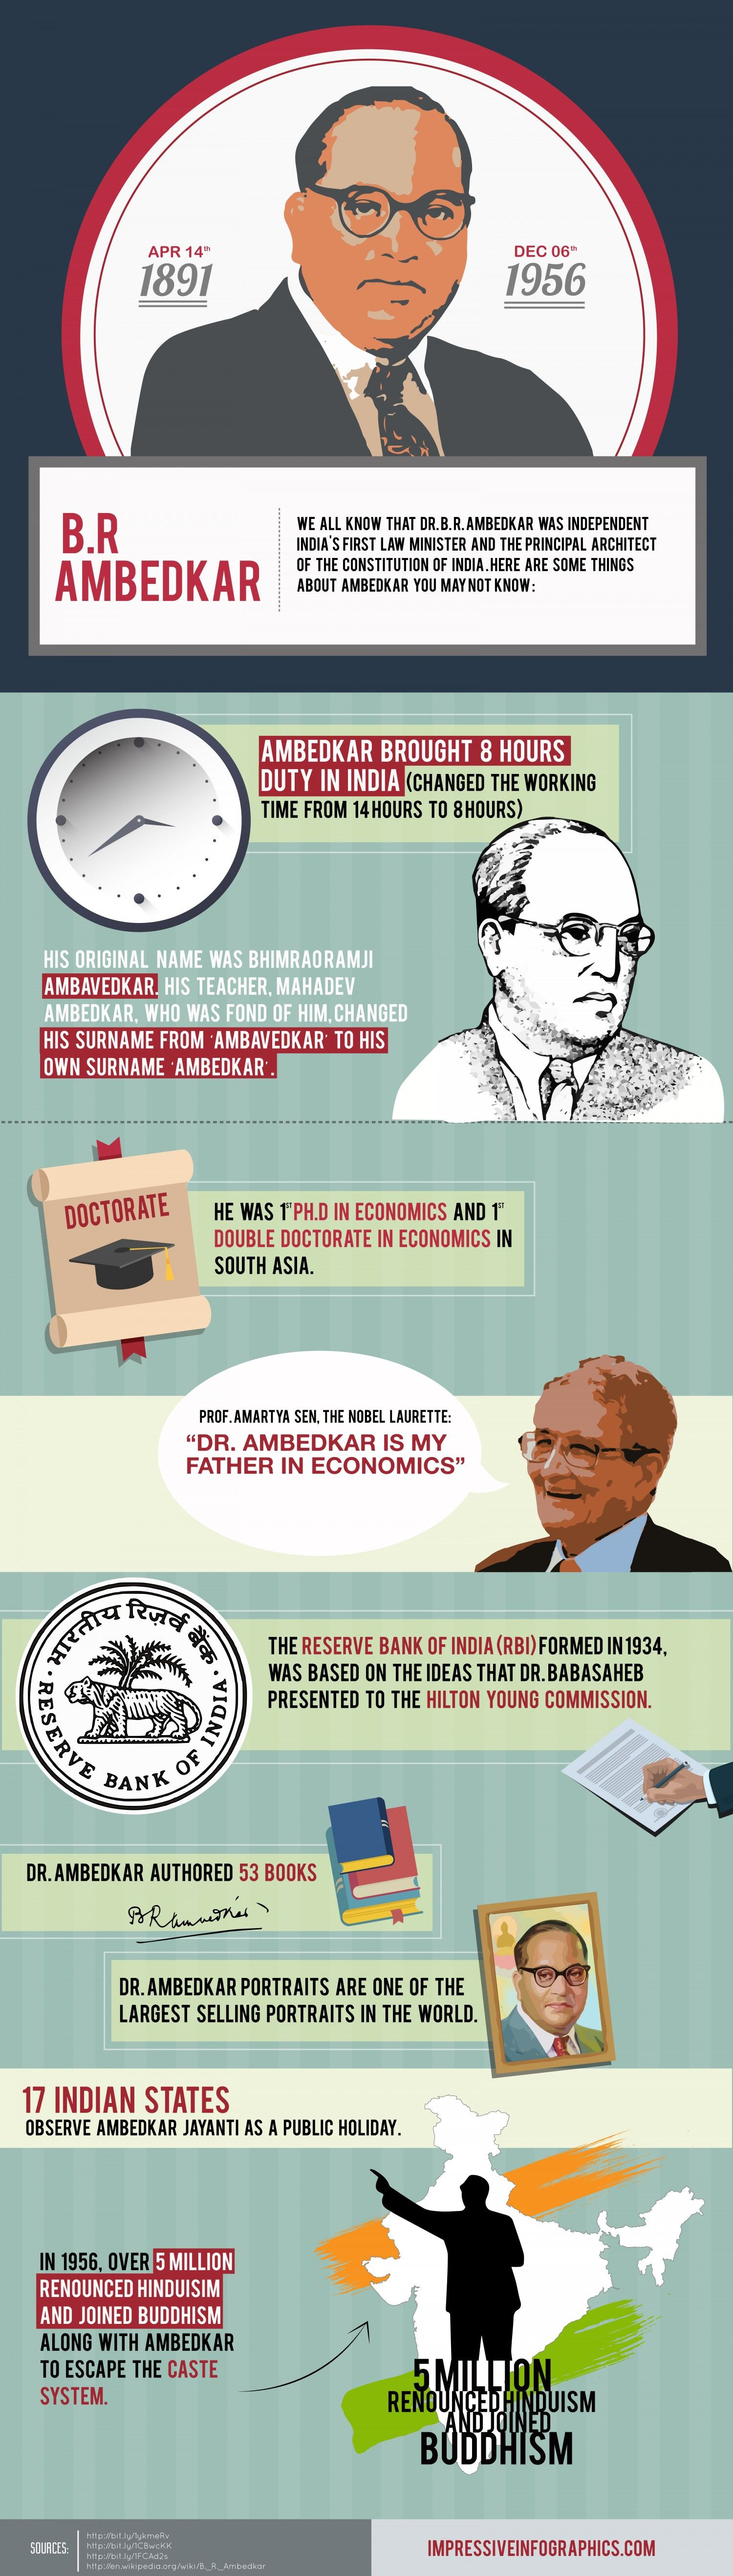 Dr. Ambedkar - The Father of Modern India | Infographics ...